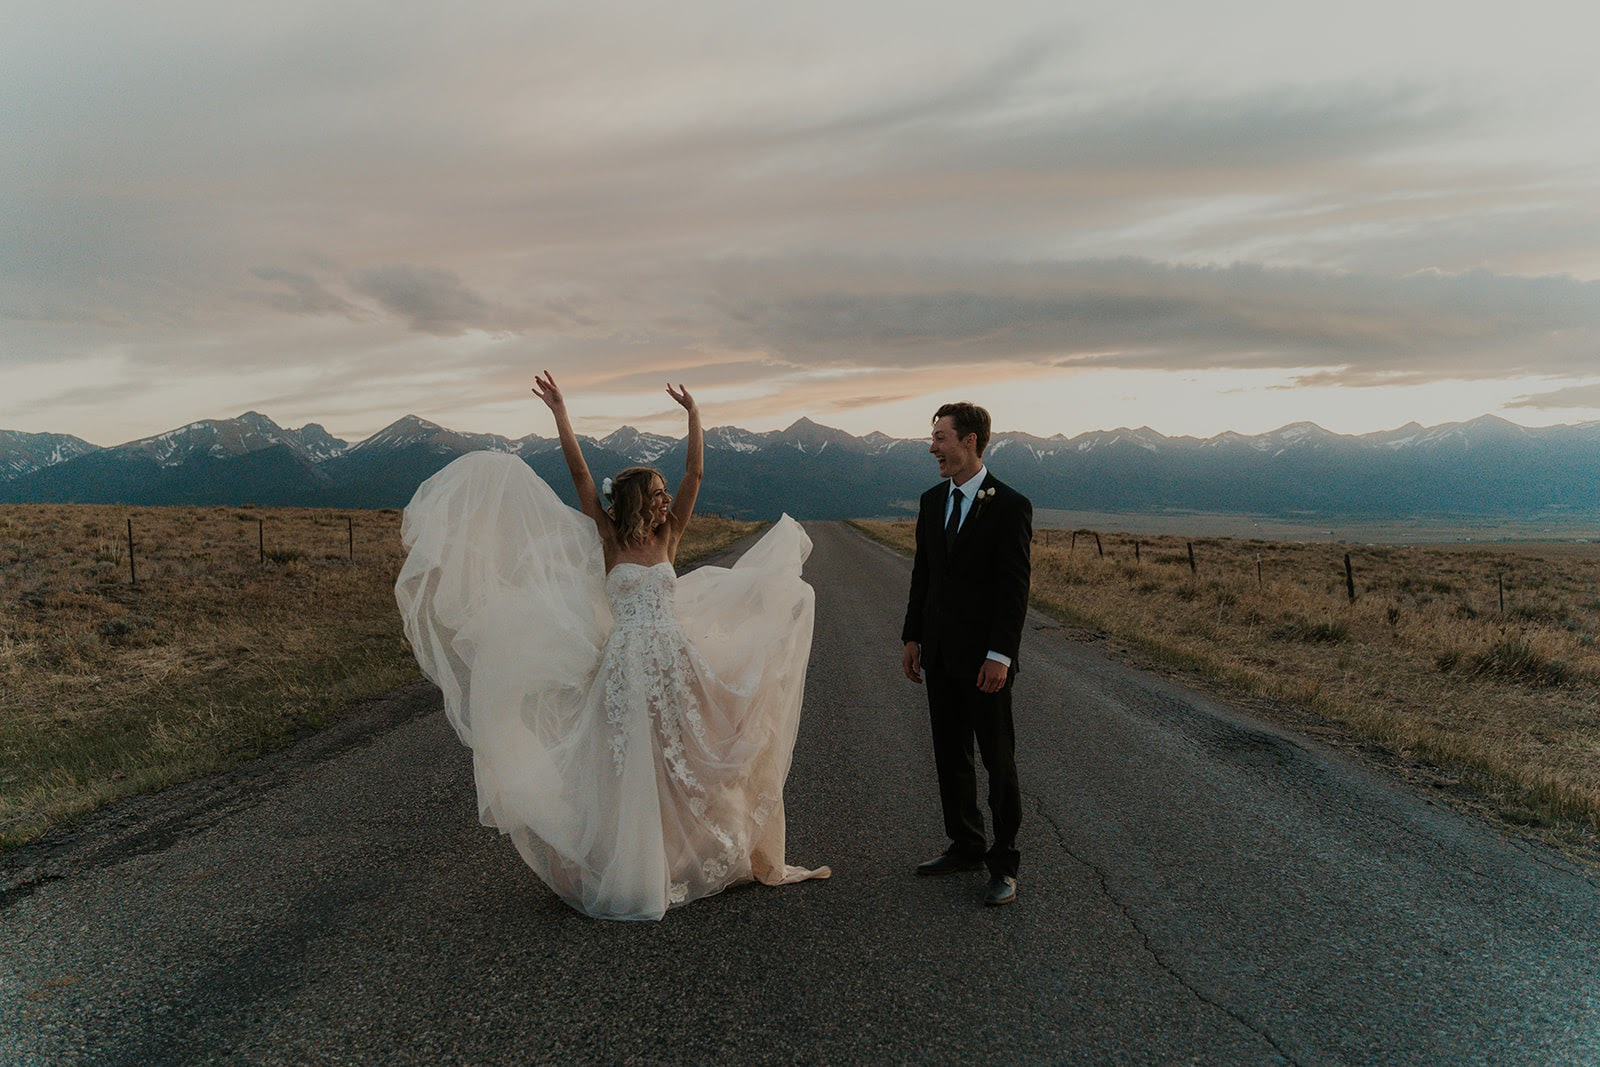 Bride and groom at sunset in the mountains